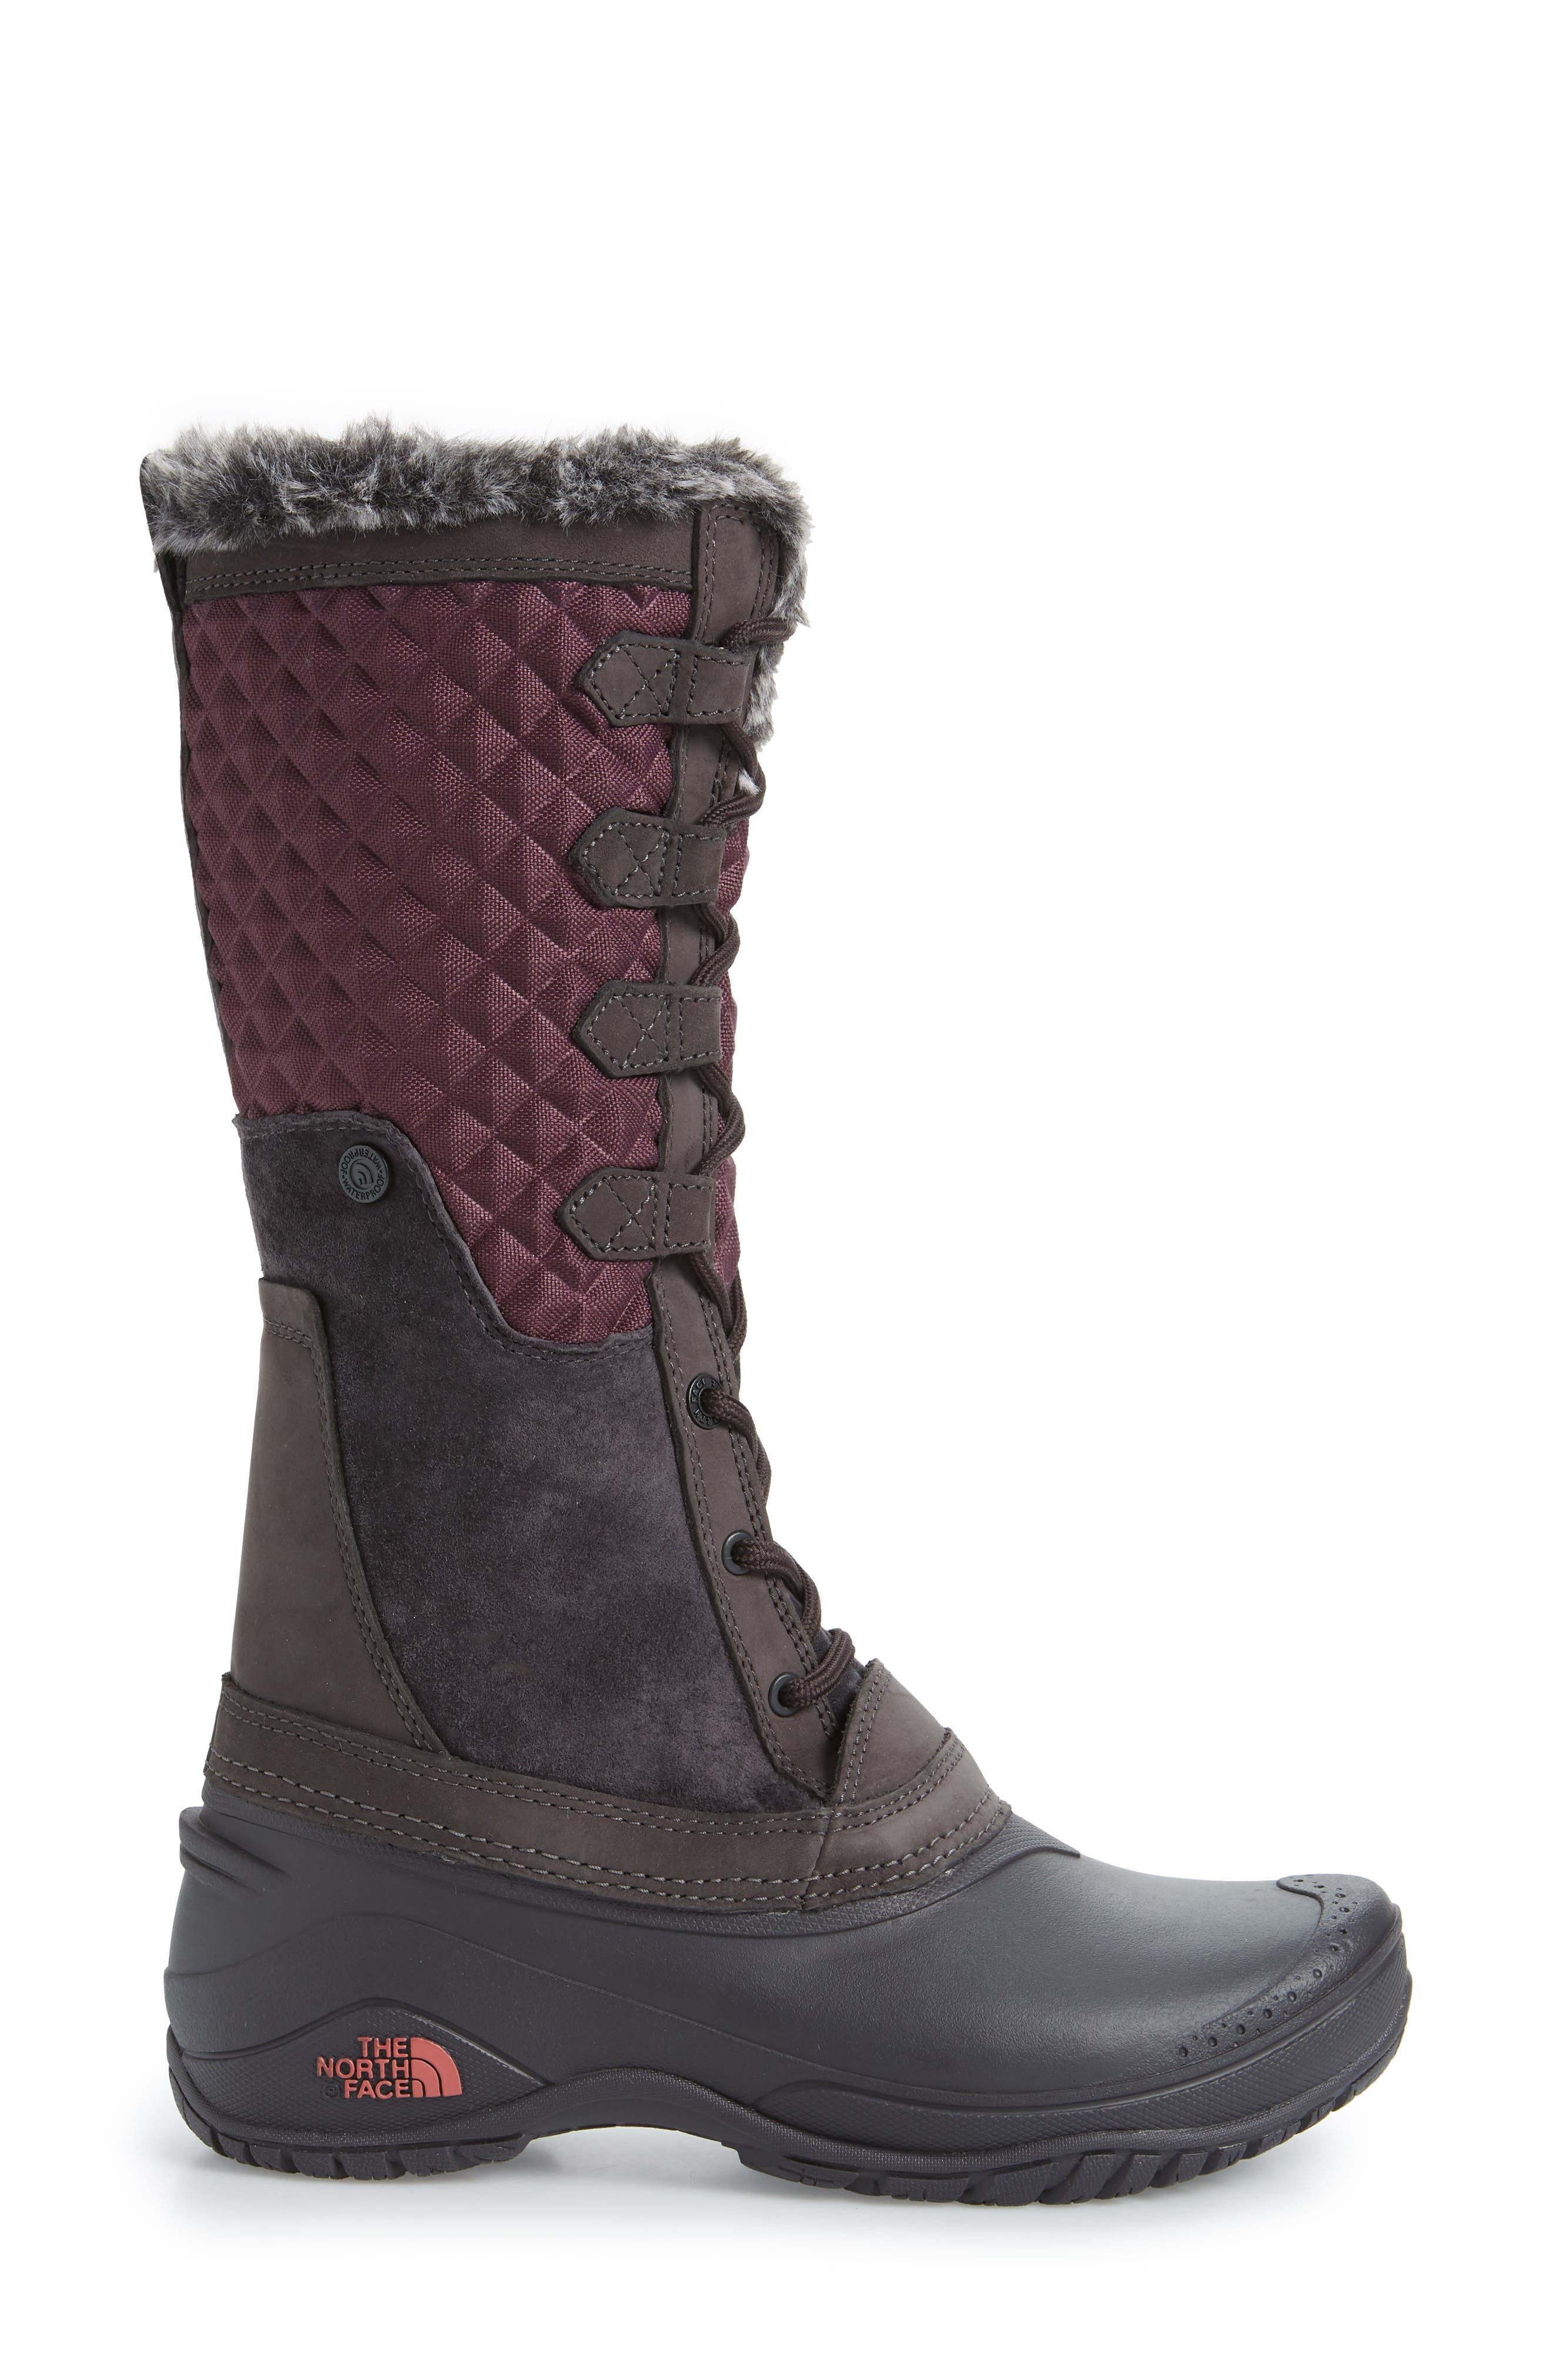 THE NORTH FACE, Shellista III Tall Waterproof Insulated Winter Boot, Alternate thumbnail 3, color, FIG/ WEATHERED BLACK